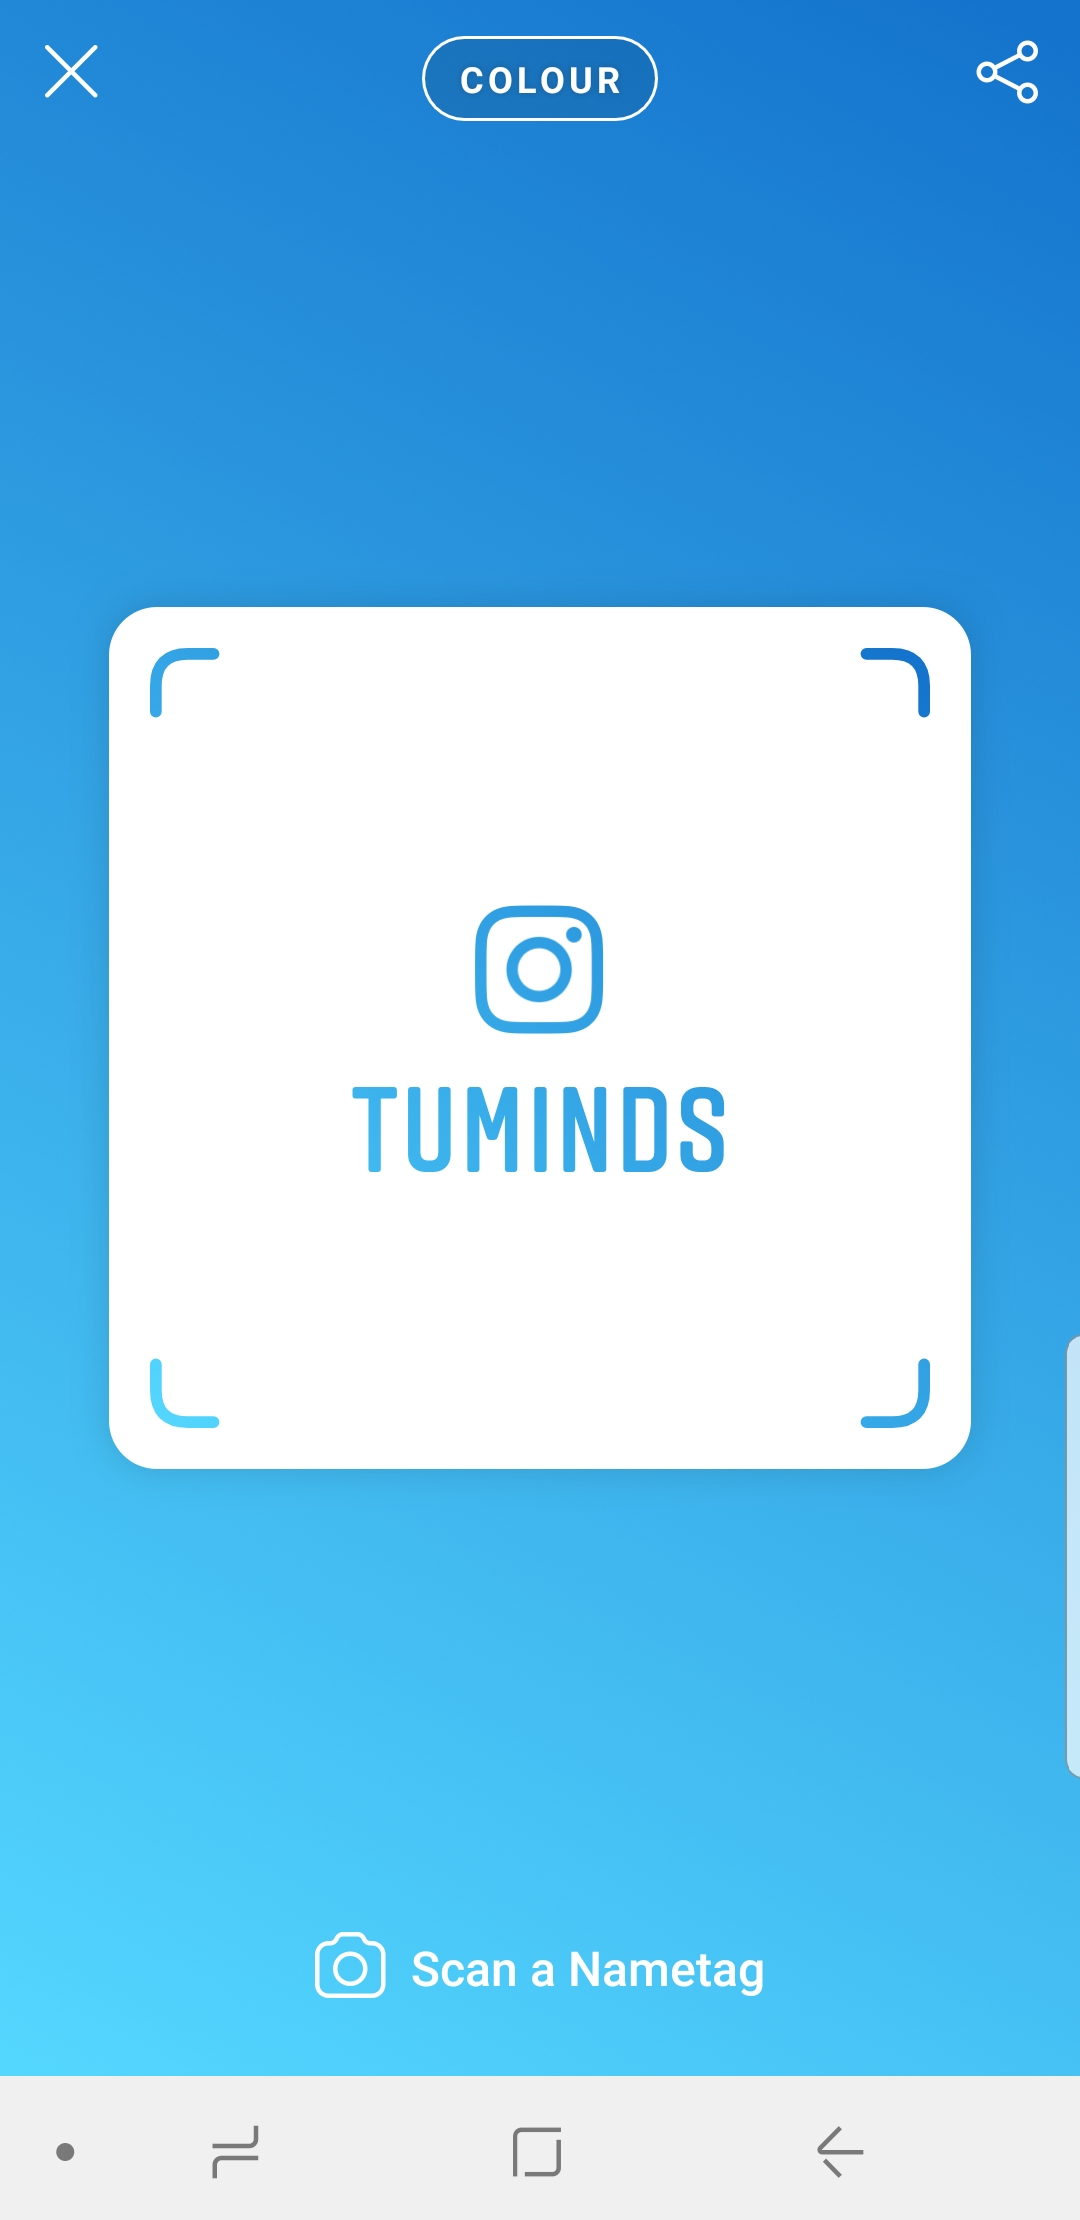 colour background on Instagram Nametag